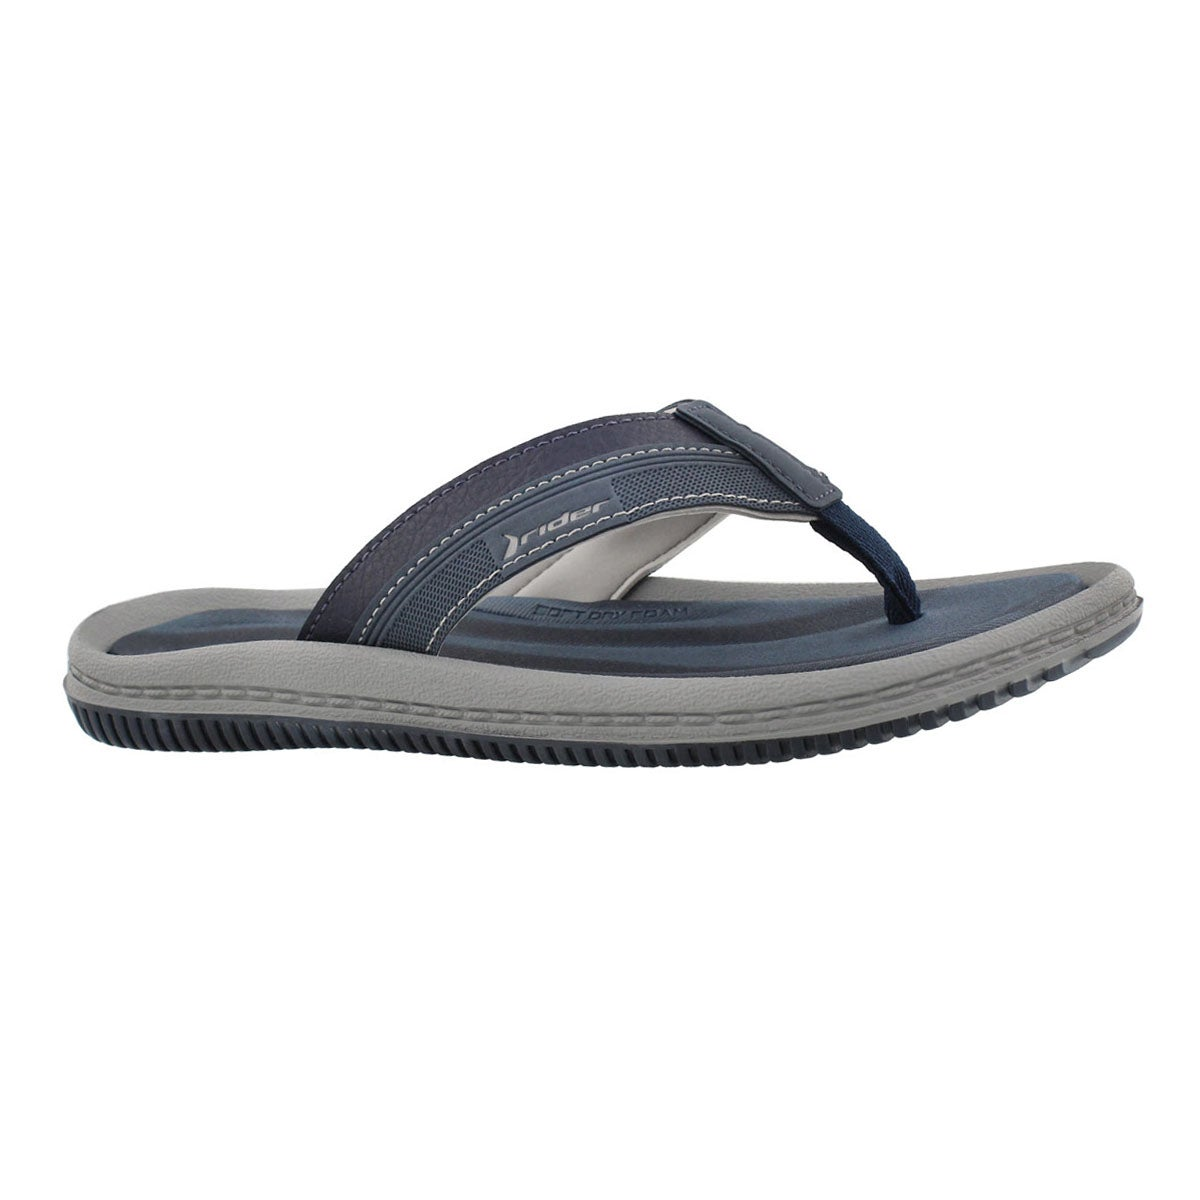 Men's DUNAS XVI blue/grey thong sandals